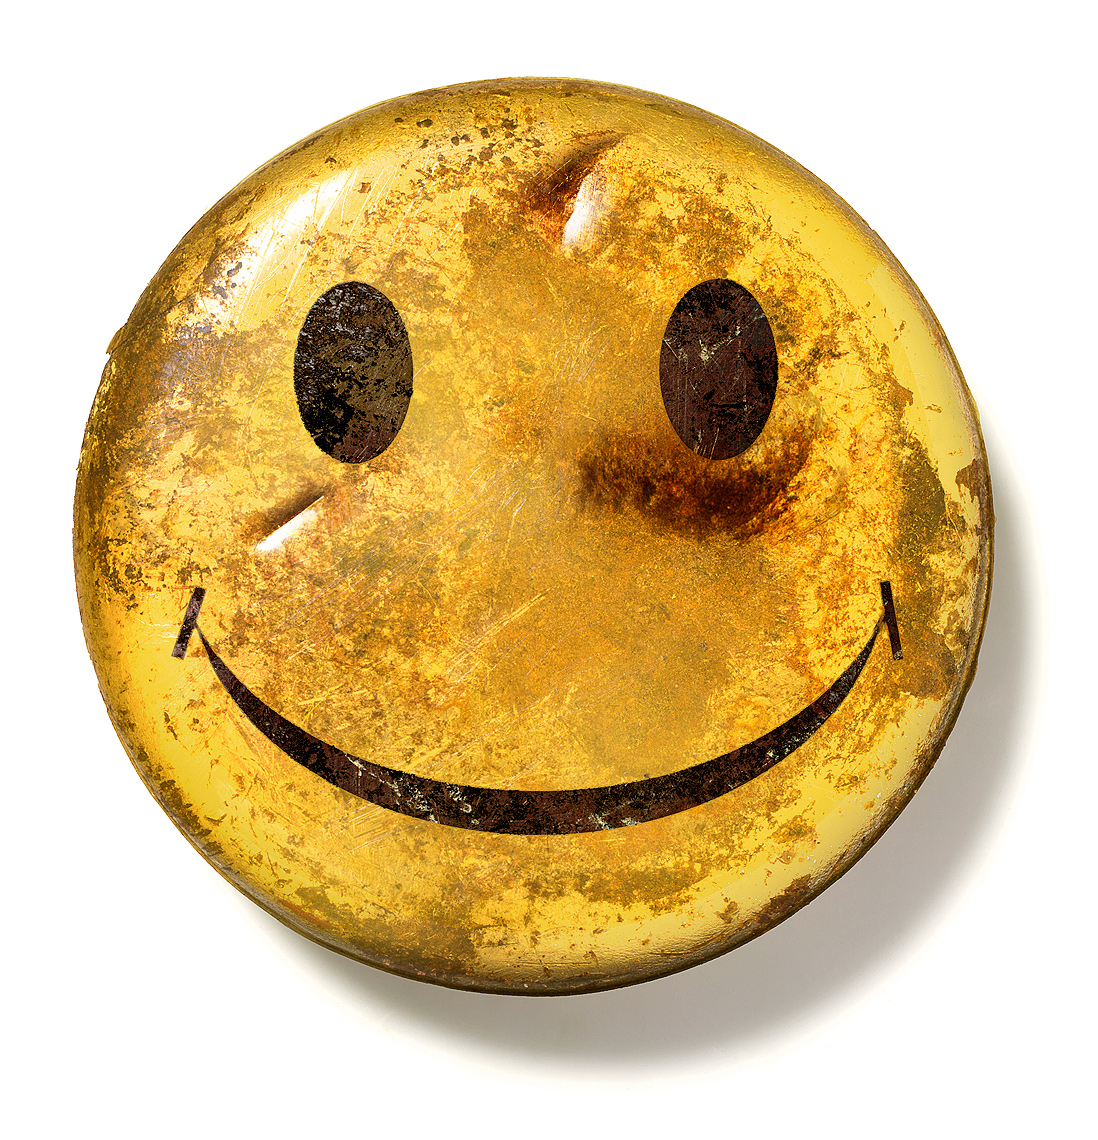 Bruised smiley face photo-Illustration 2  by John Kuczala